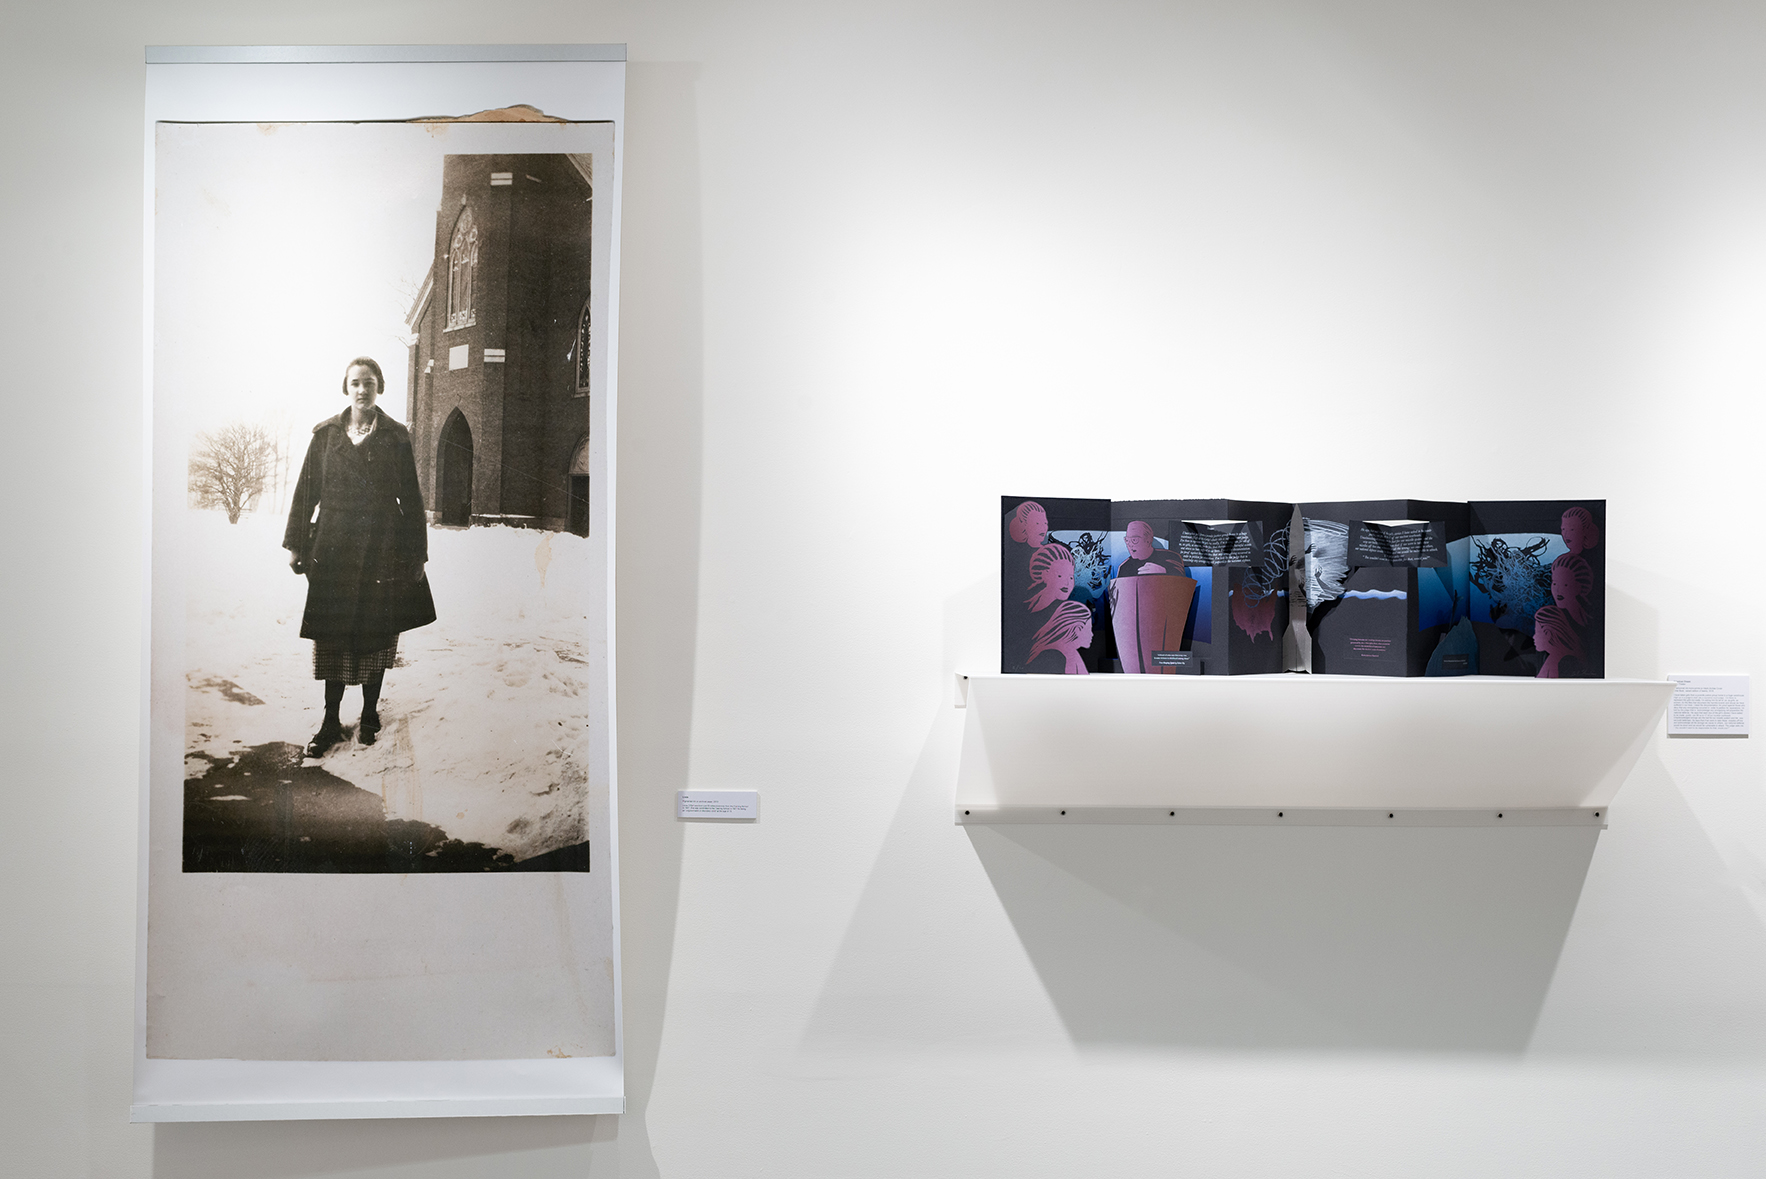 "[Left]  Linda,  Alison Cornyn, Linda was committed to the Training School in 1921 for being an "" ungovernable or disorderly child "" at the age of 13. Pigmented ink on archival paper, 2013. [Right] American Dream  Beth Thielen. Charbonnel ink mono-prints on black Arches Cover. Artist Book, variant edition of twenty, 2018"